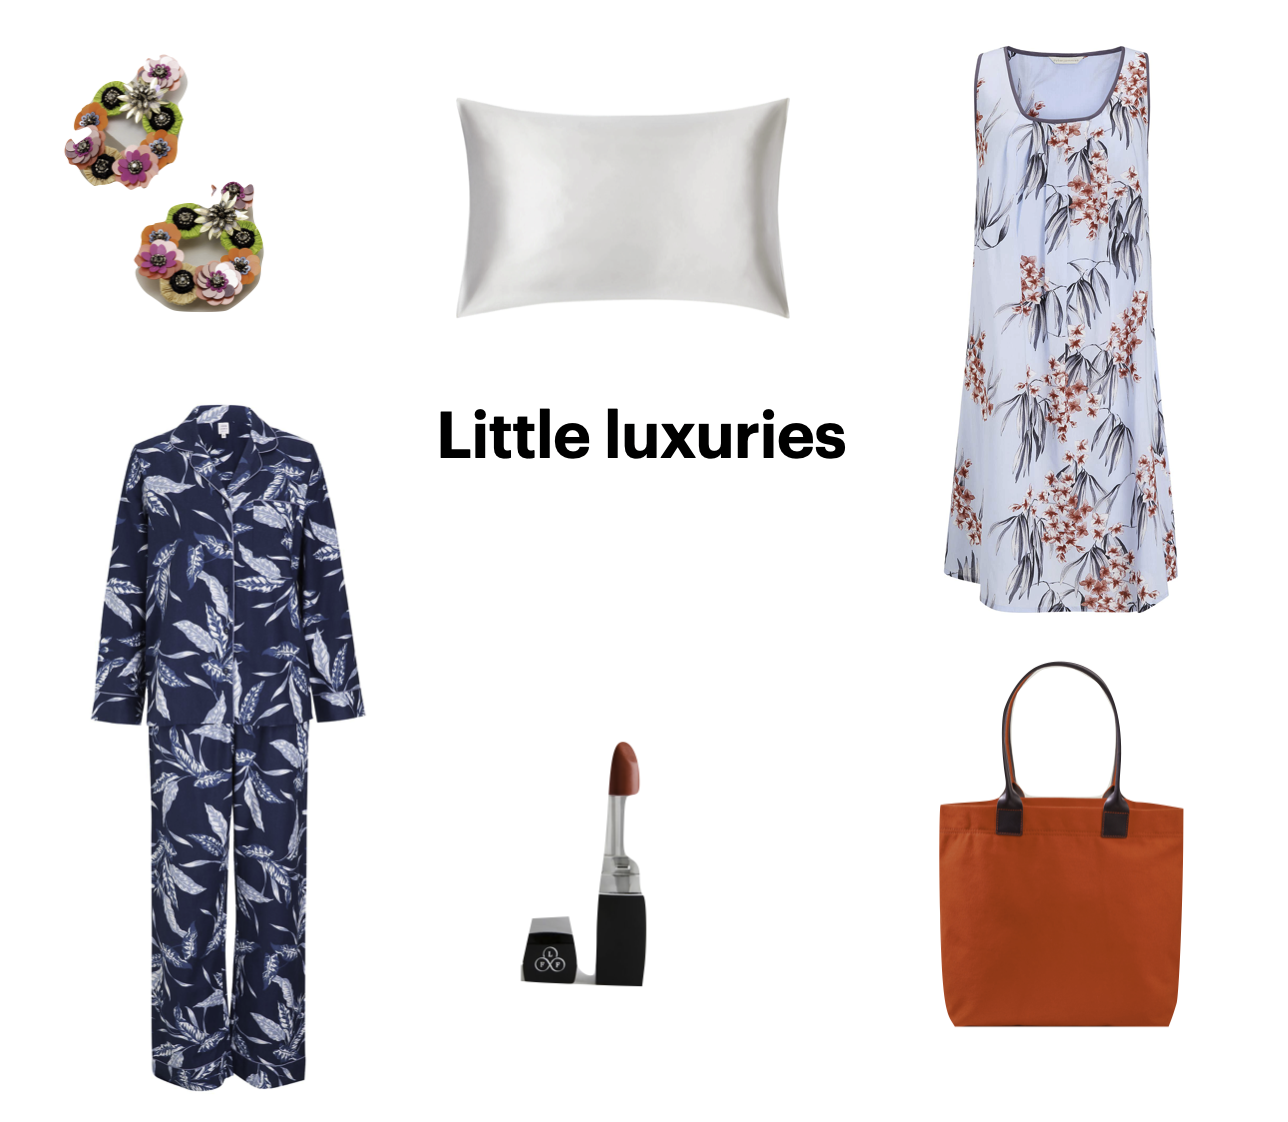 Little luxuries to brighten your day